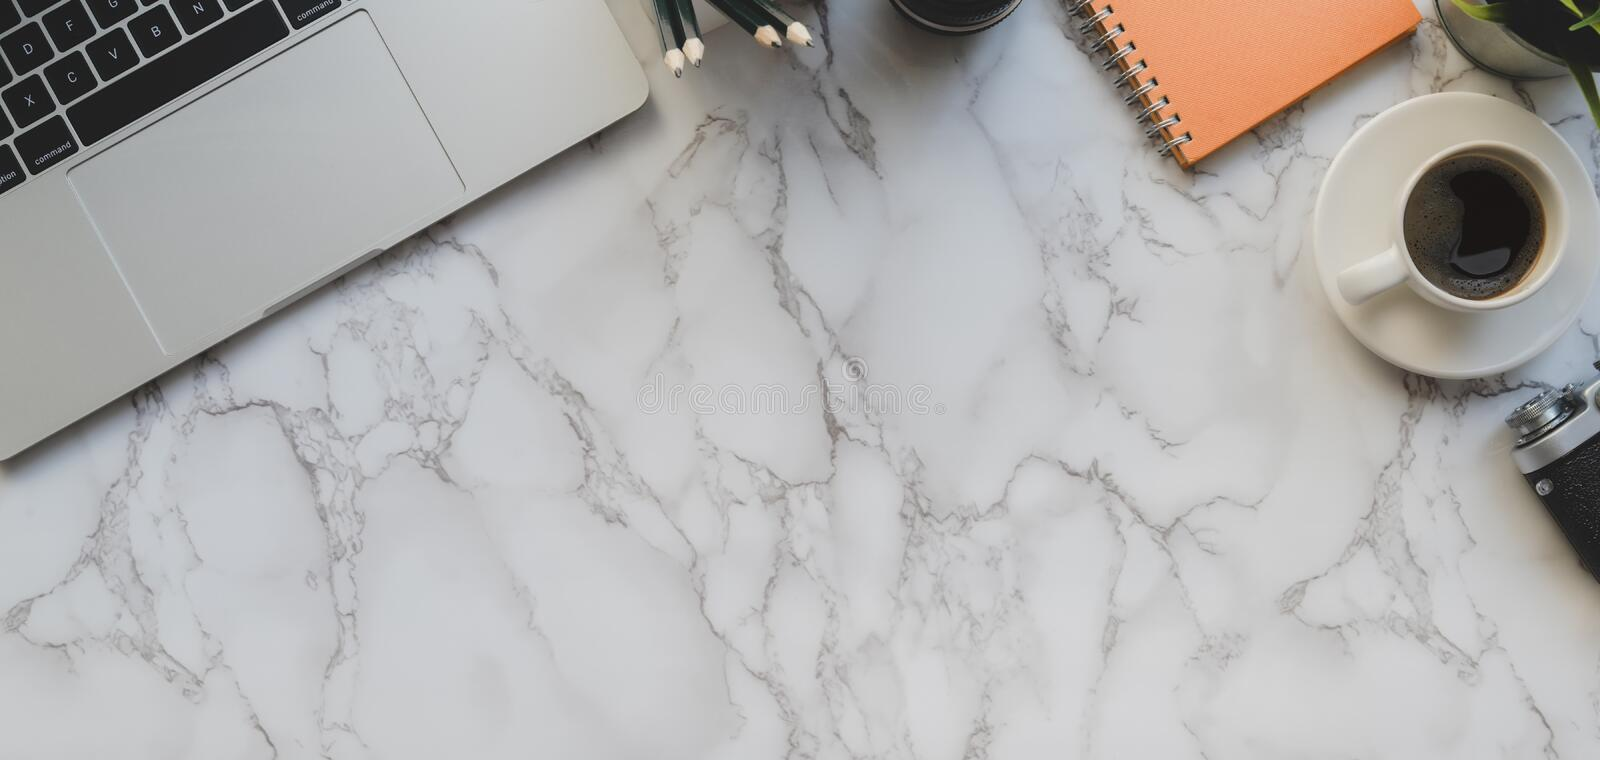 Overhead shot of modern photographer workspace with laptop computer and office accessories on marble stock image